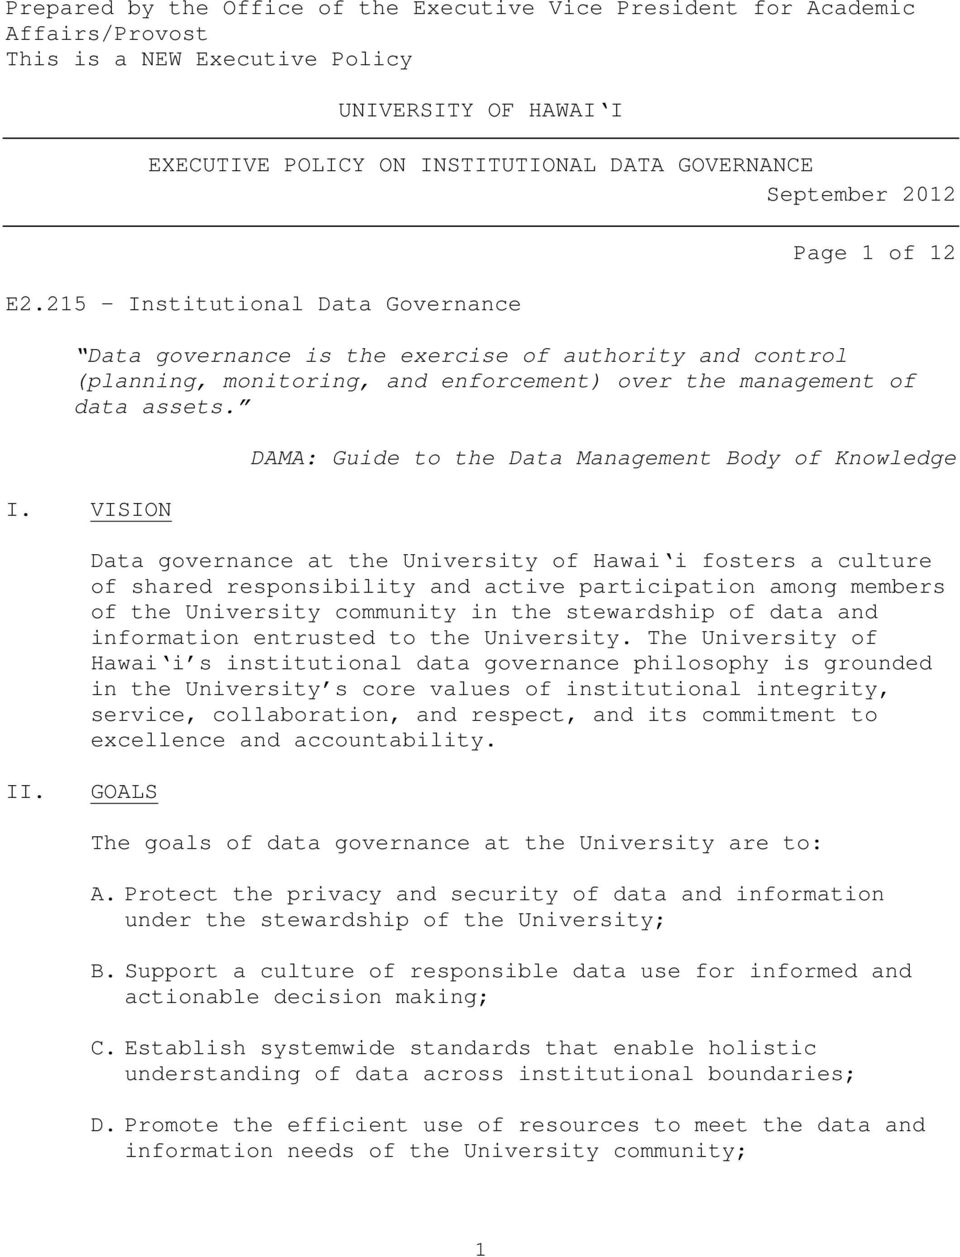 stitutional Data Governance Page 1 of 12 Data governance is the exercise of authority and control (planning, monitoring, and enforcement) over the management of data assets. I.